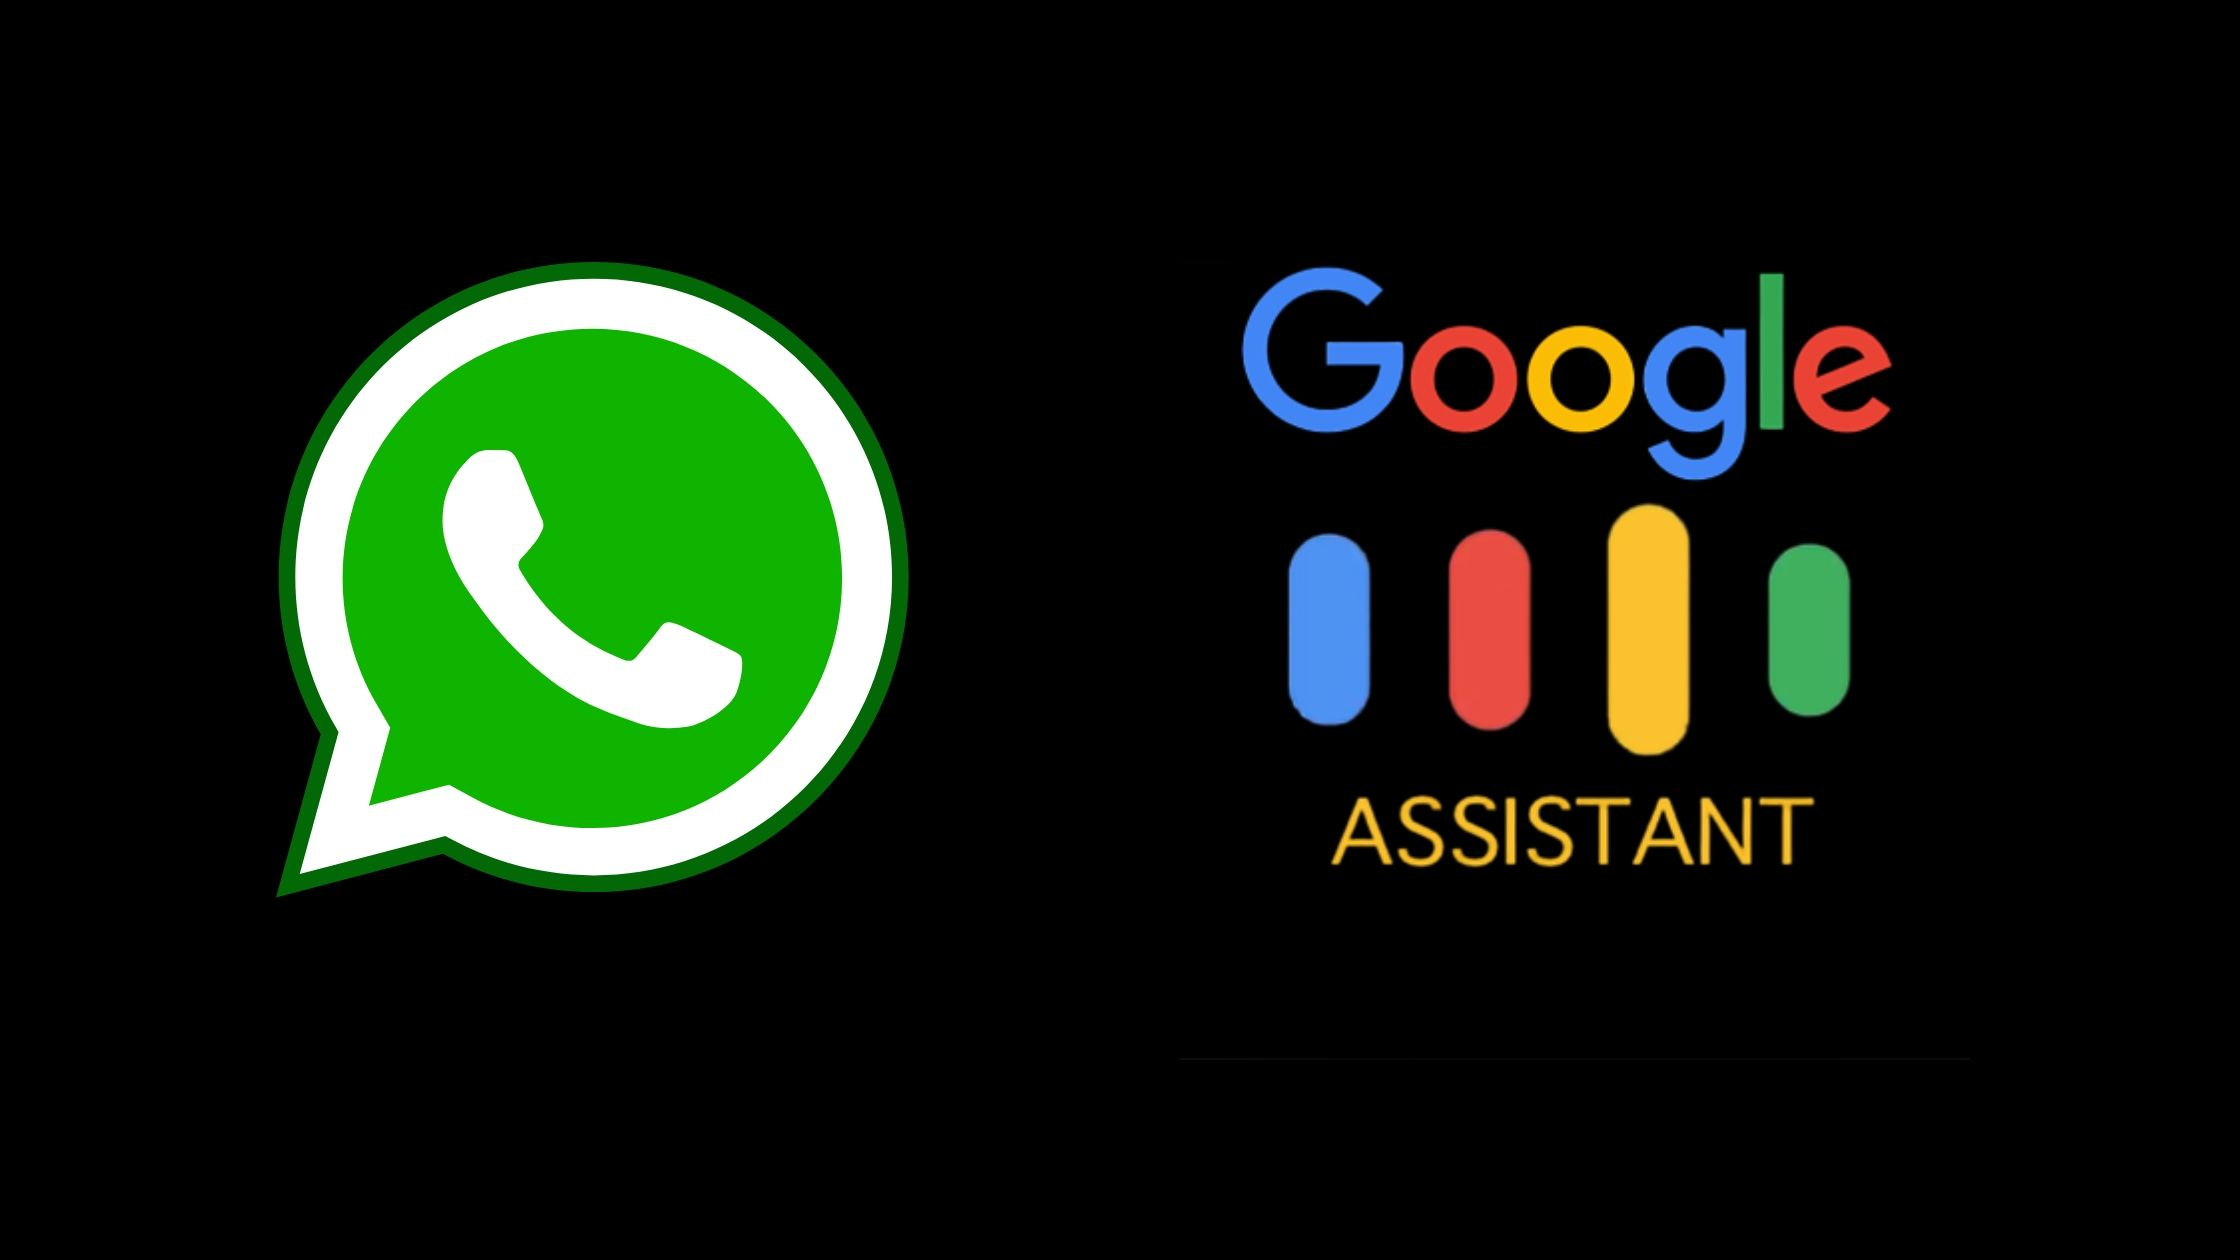 How to Make Whatsapp call from Google Assistant?